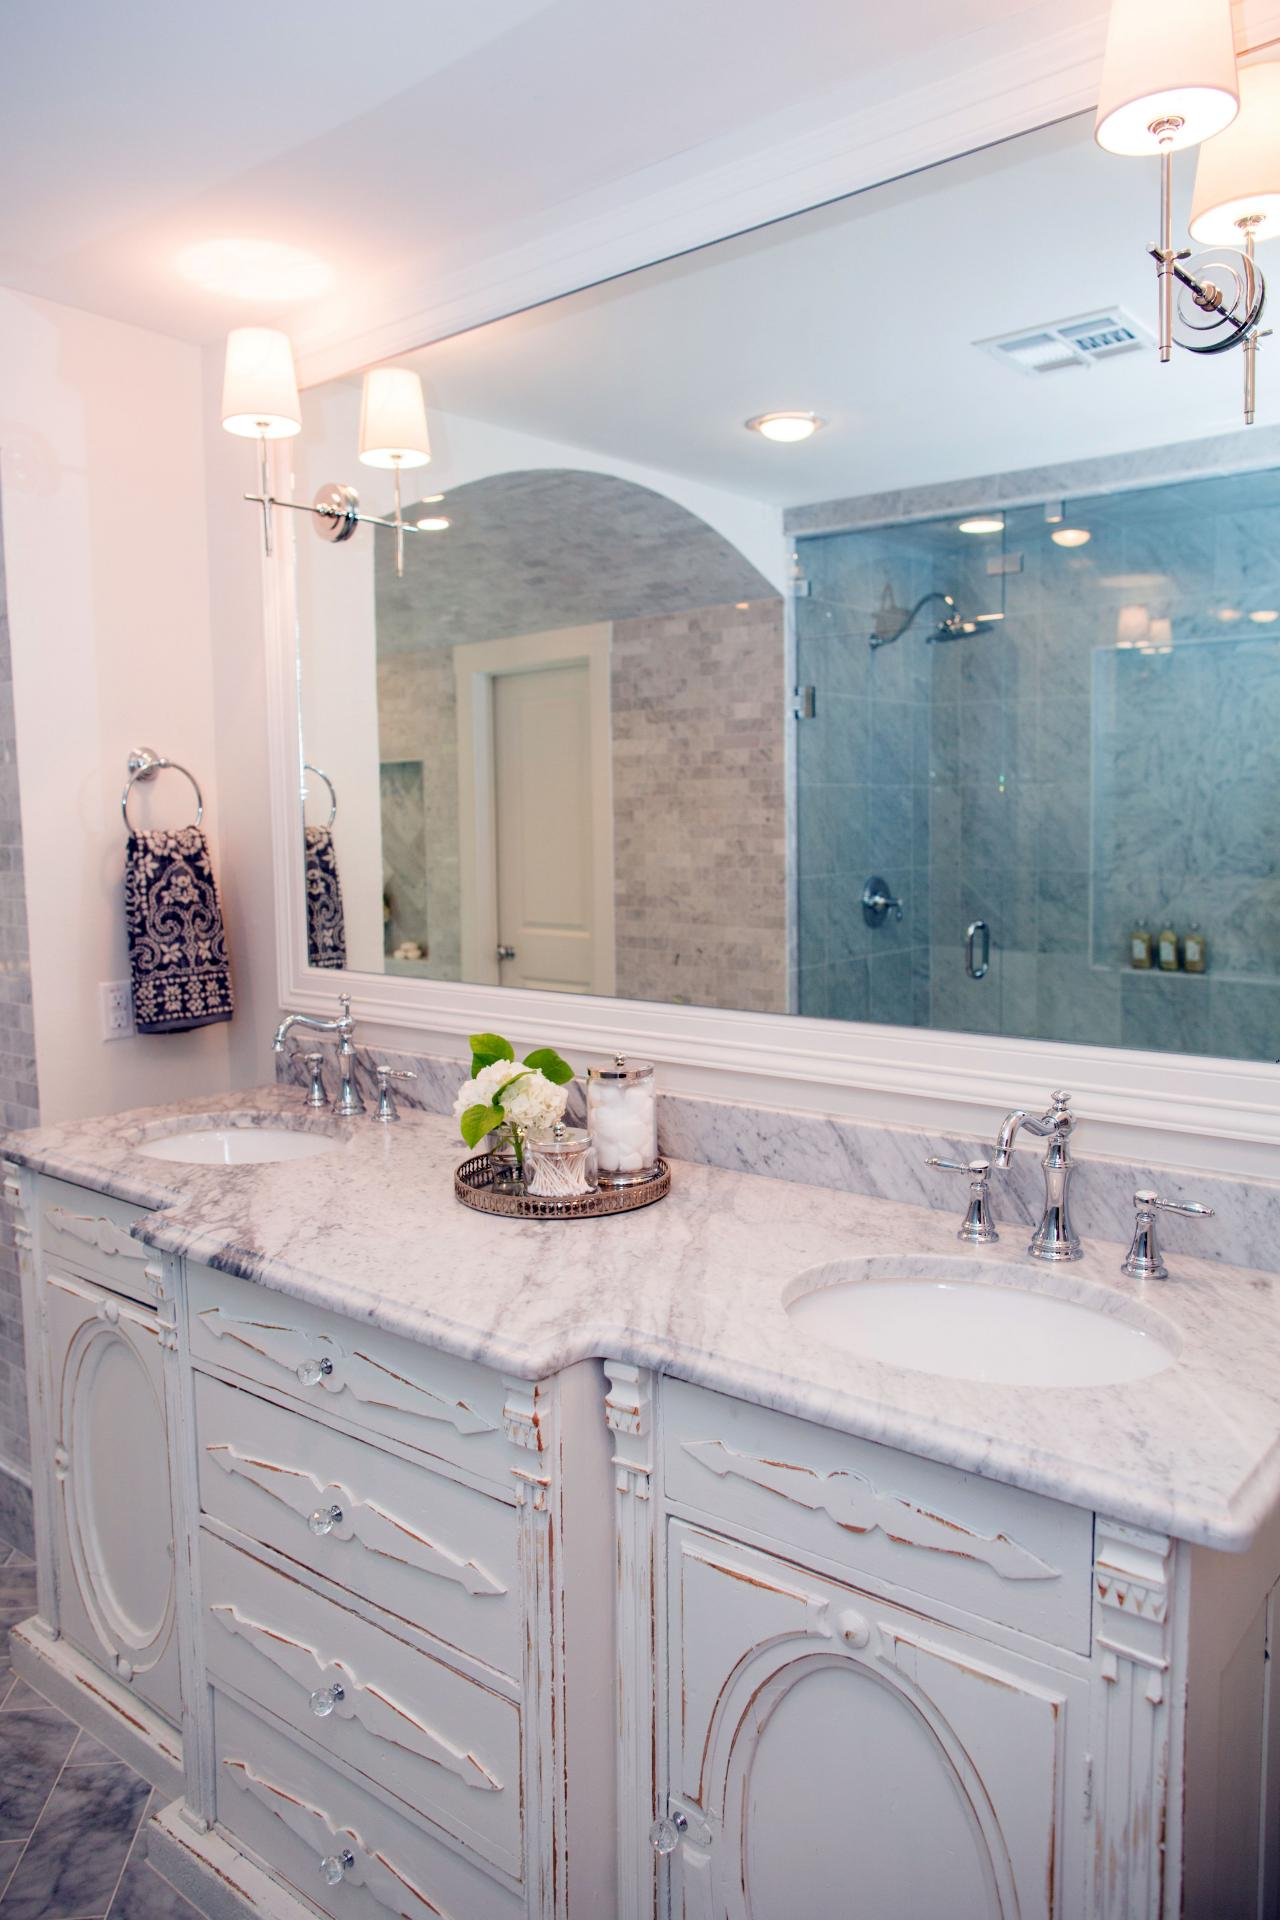 A Close Up Of The Double Sinks In Remodeled Master Bathroom Newly Renovated Ferguson Home As Seen On FIxer Upper After